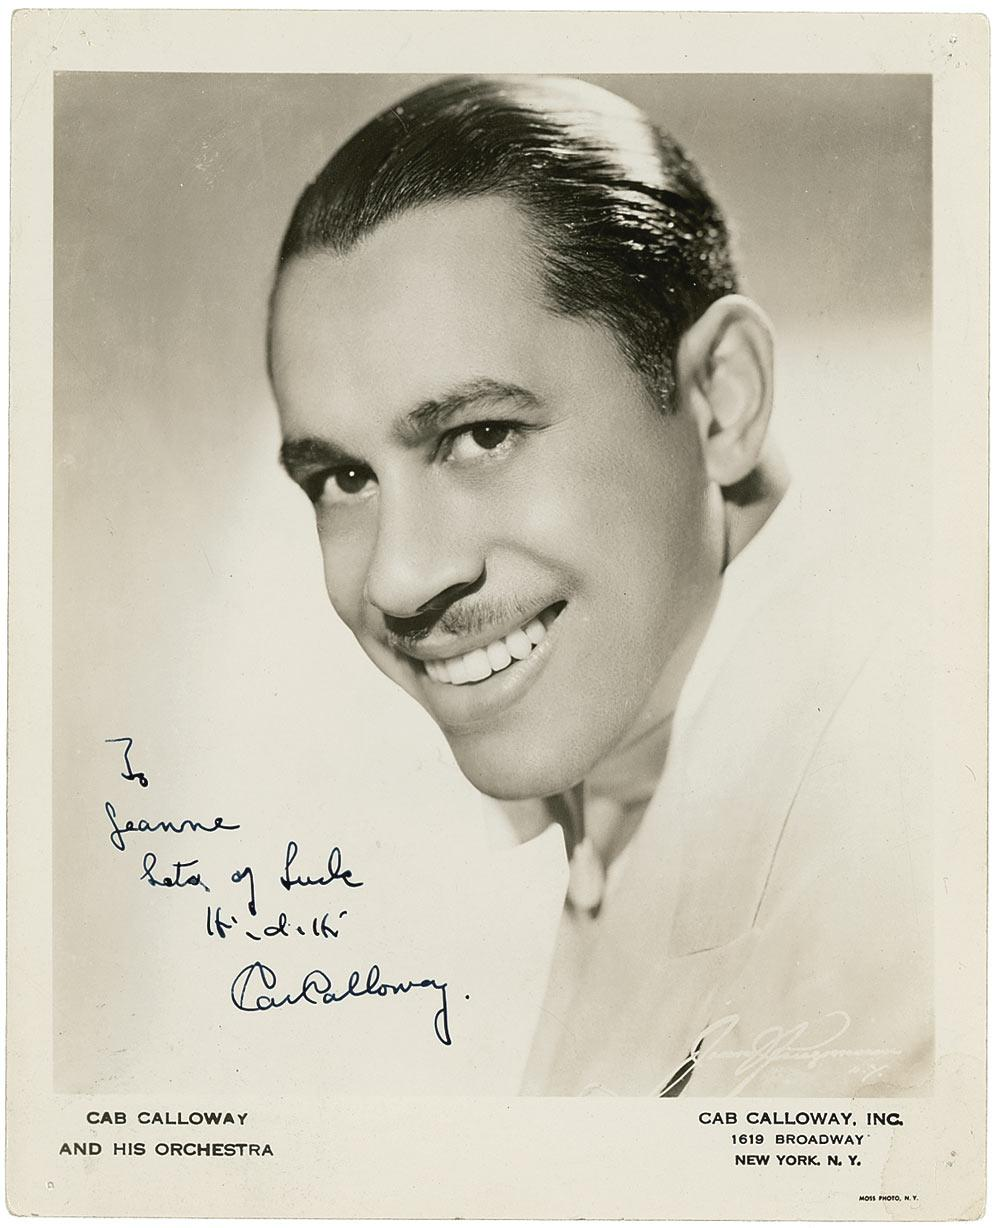 an introduction to the life of cab calloway The great gatsby auction gala 89  finn has made spreading this practice the main focus of his life by finding ways to introduce the practice  cab calloway, and.